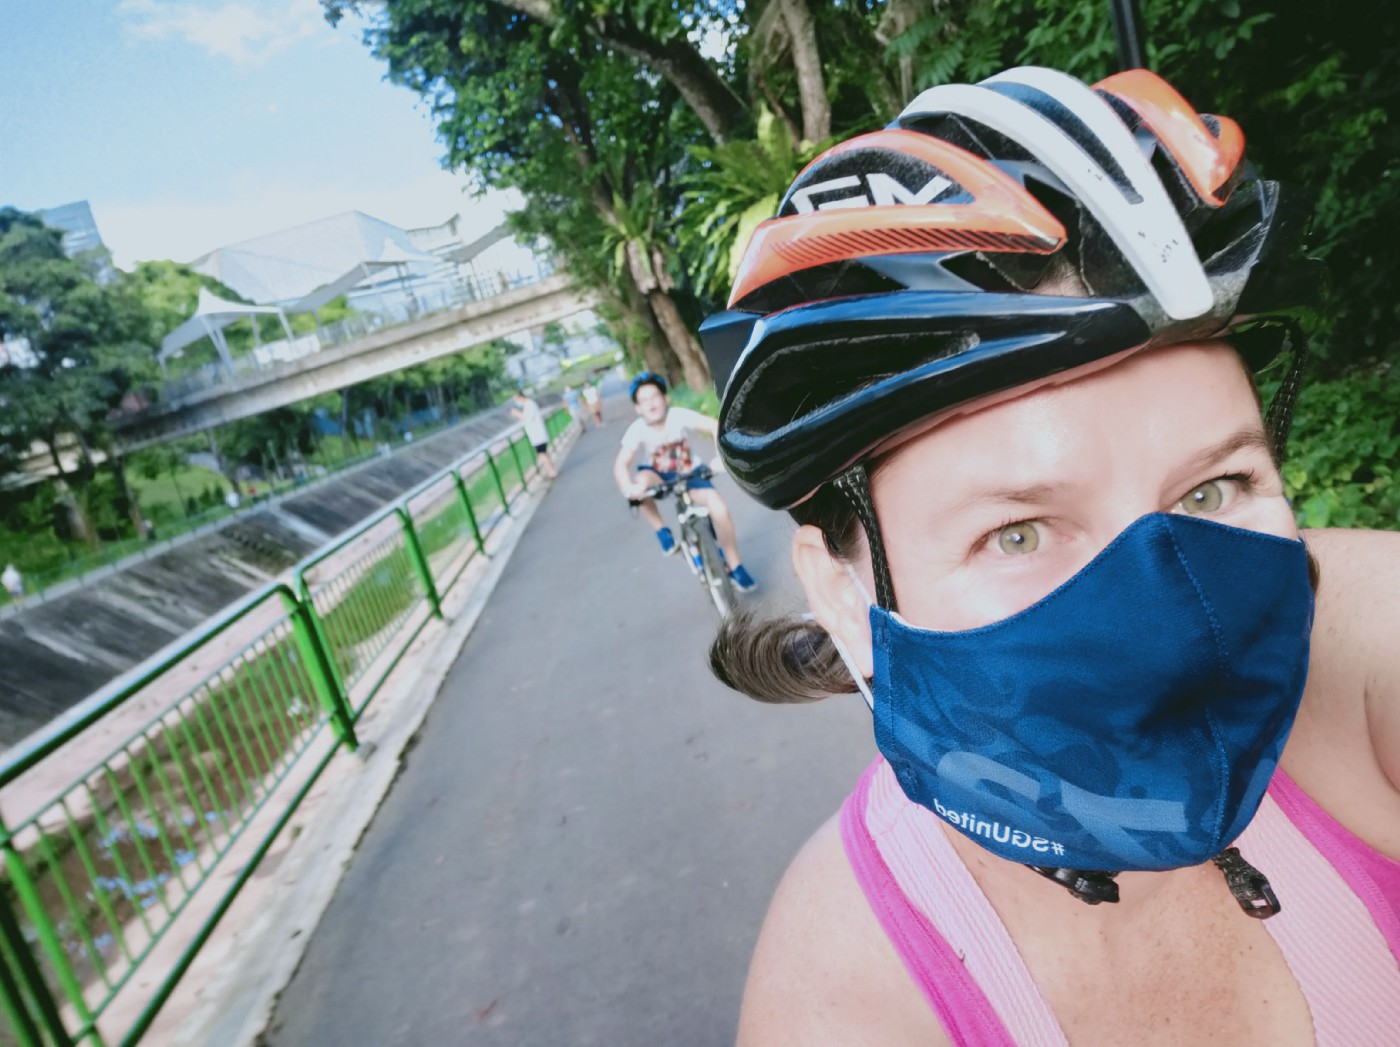 woman wearing a cycling helmet and face mask. She has green eyes and looks to be smiling under the mask. Behind her is an out of focus happy looking child on bicycle also wearing a helmet. They are on a cycle path with a bridge, buildings and trees in the background.